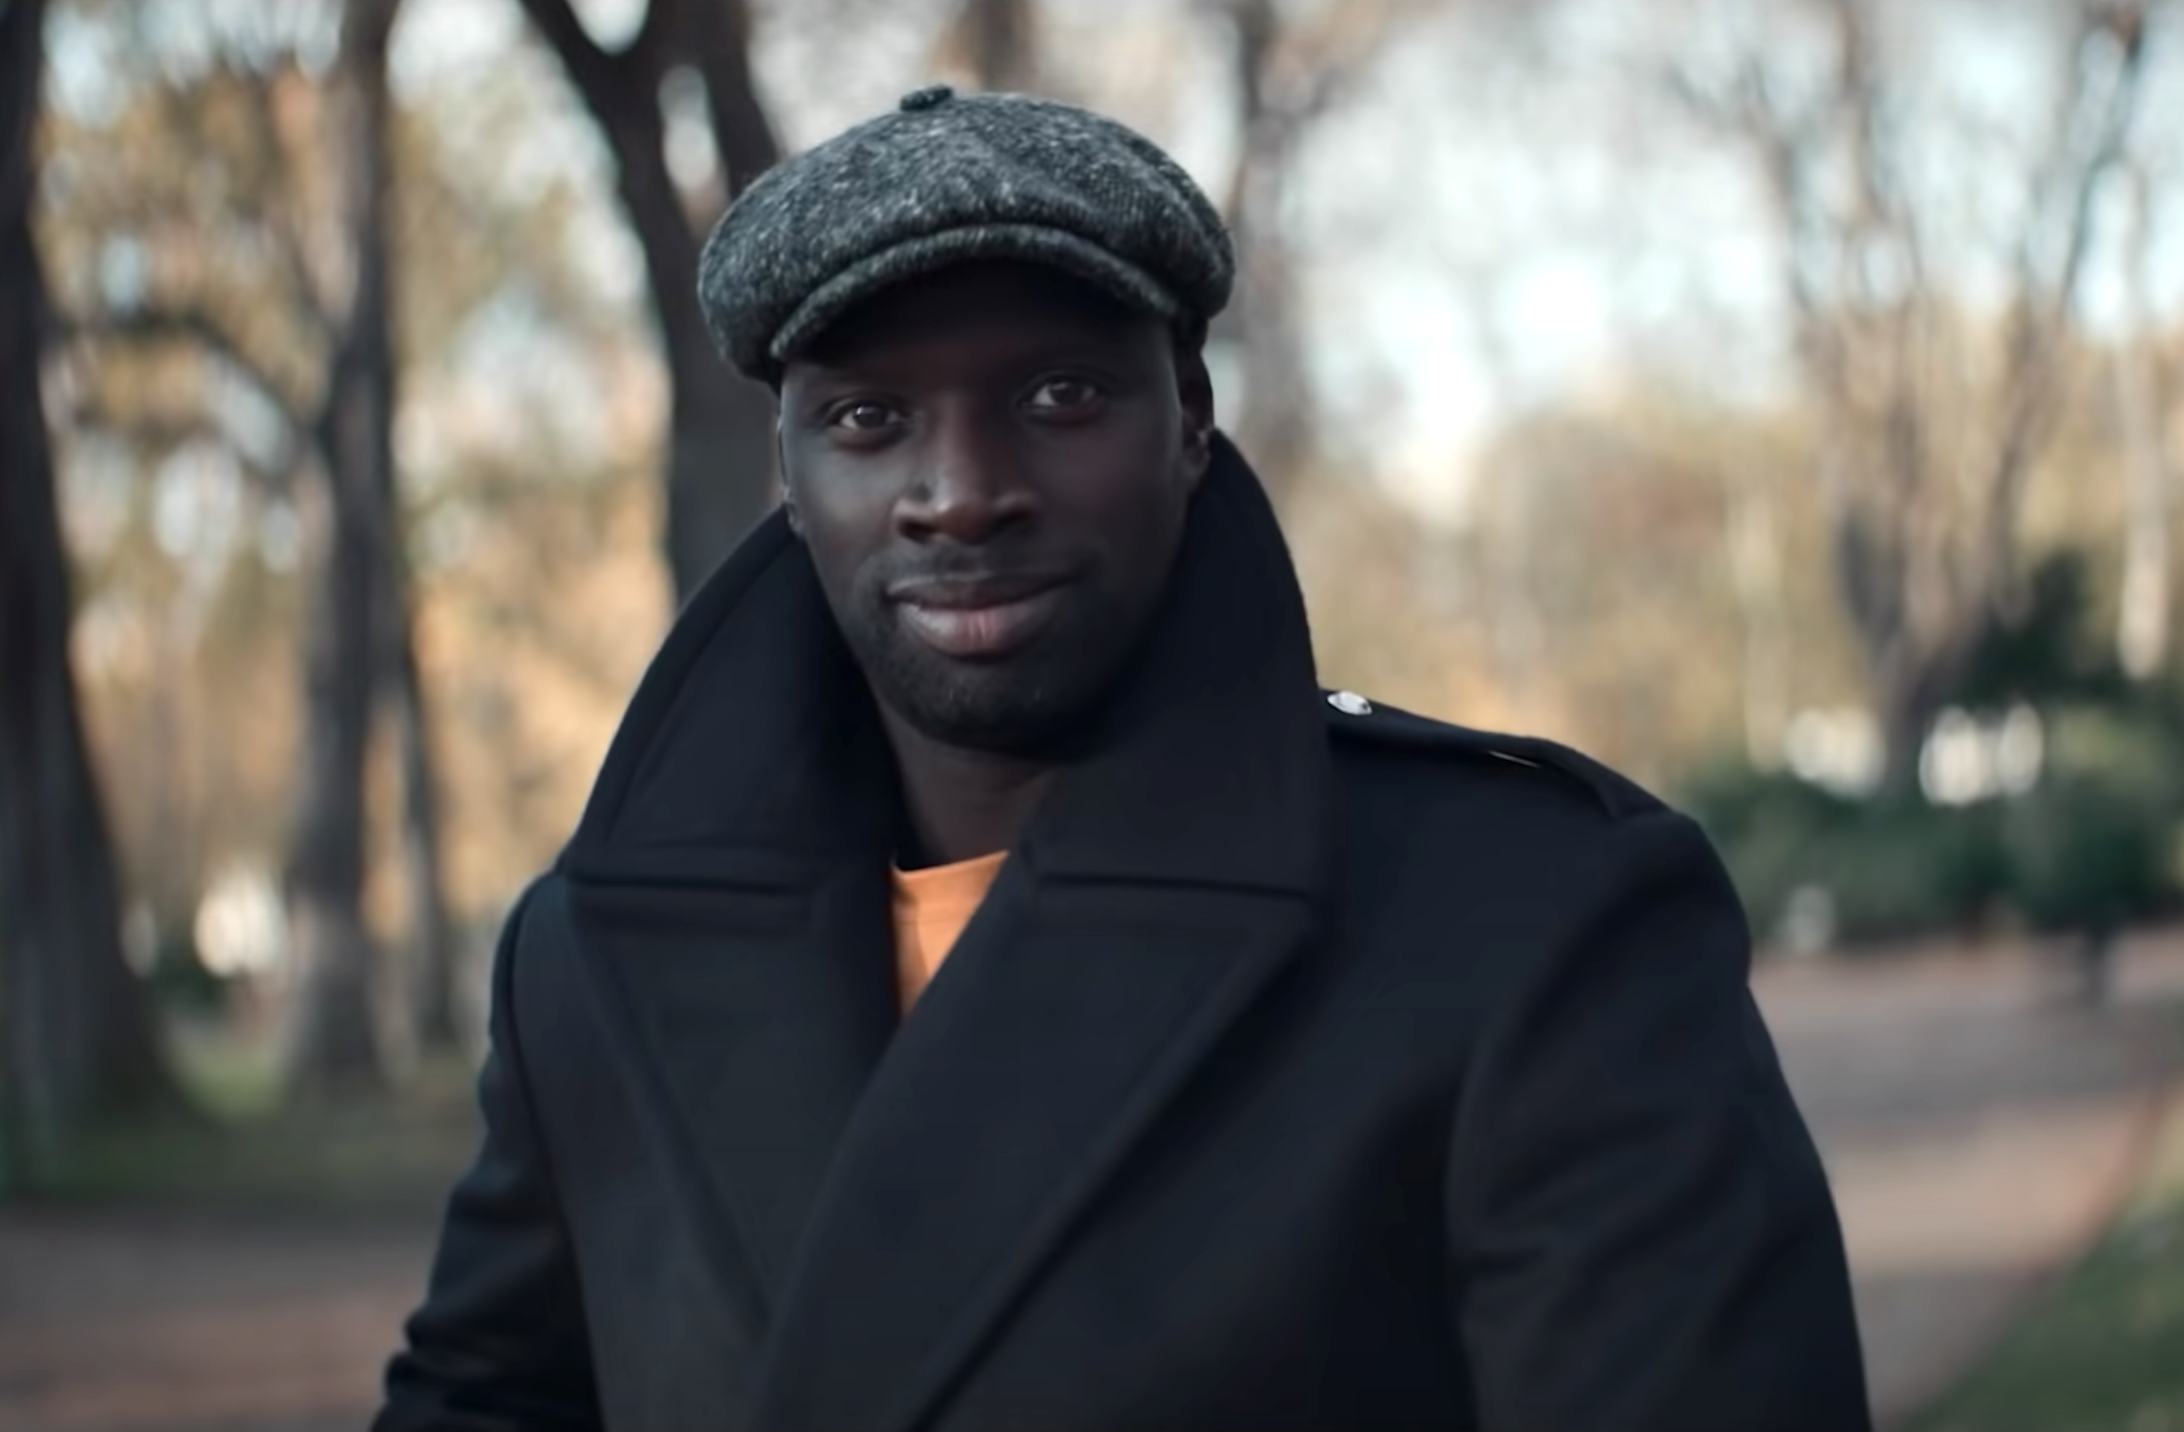 Screenshot from Lupin of Omar Sy wearing winter clothing